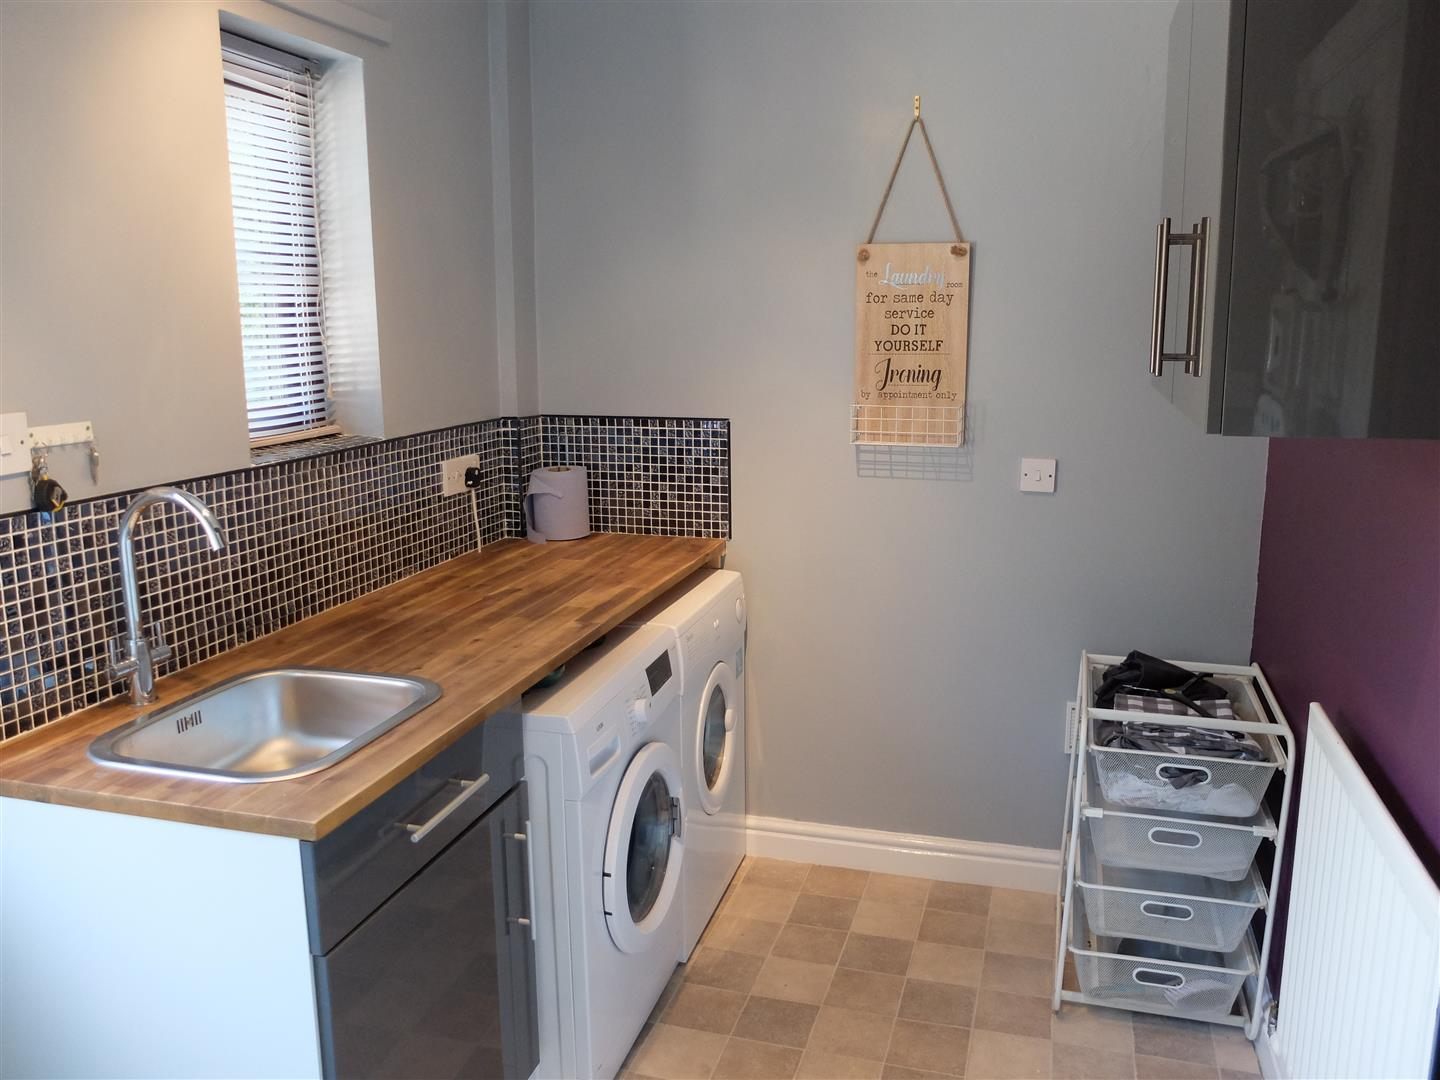 3 Bedrooms House - Semi-Detached On Sale 21 Oakleigh Way Carlisle